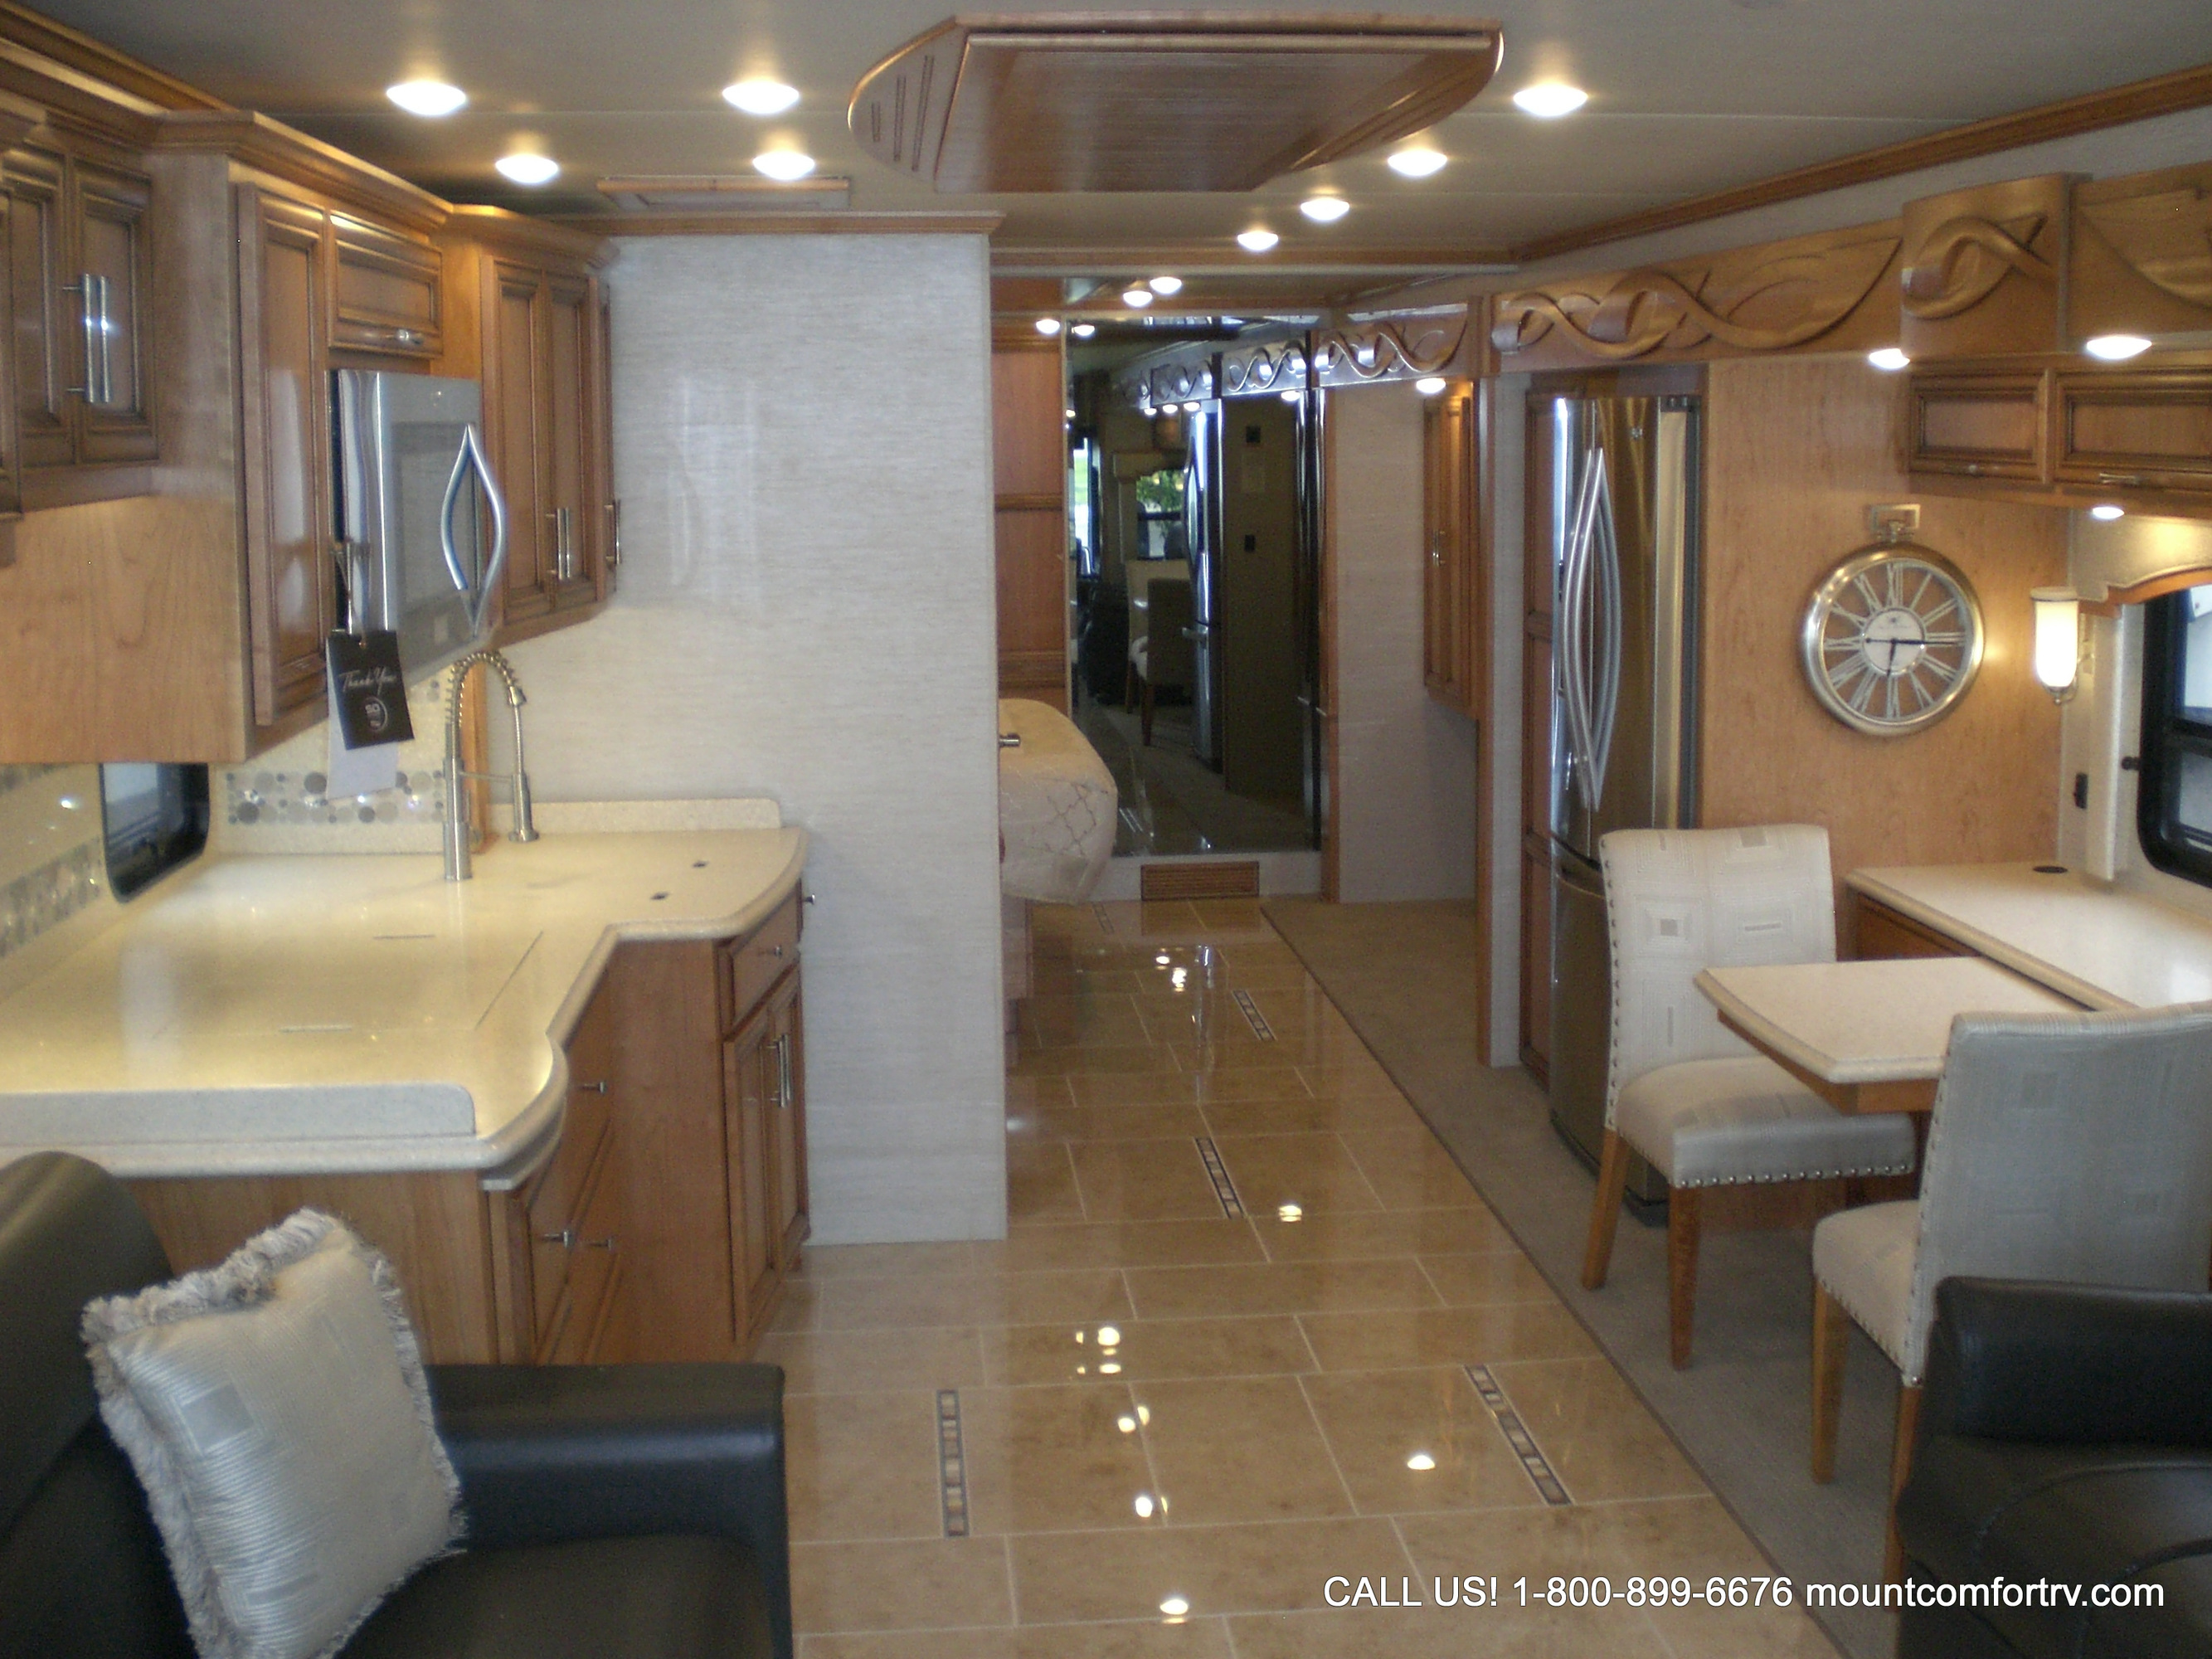 Newmar   Mount Comfort RV   Greenfield Indiana